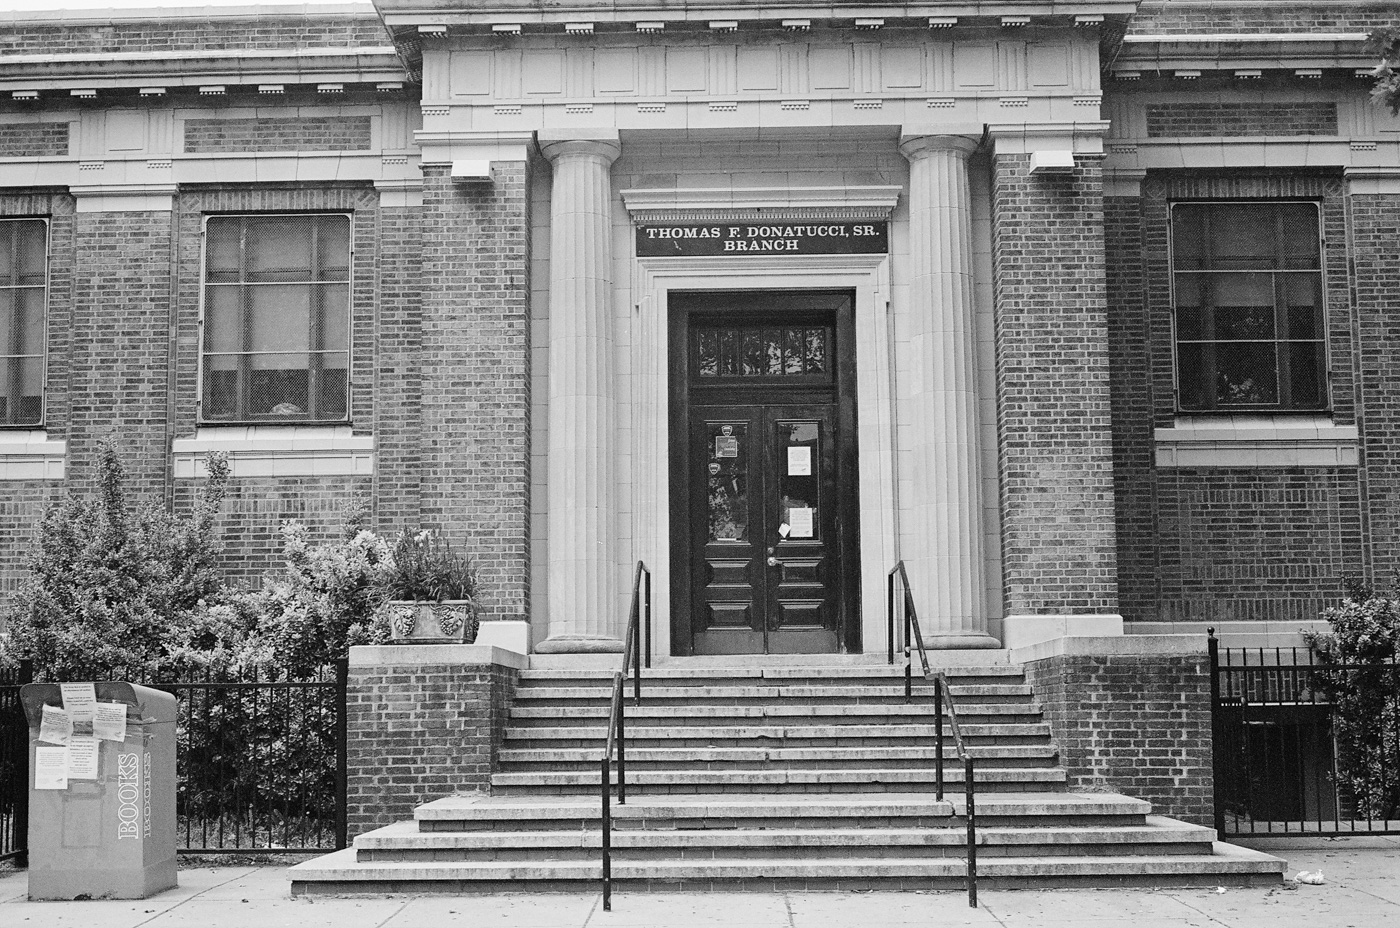 Thomas F. Donatucci Sr. Branch Library